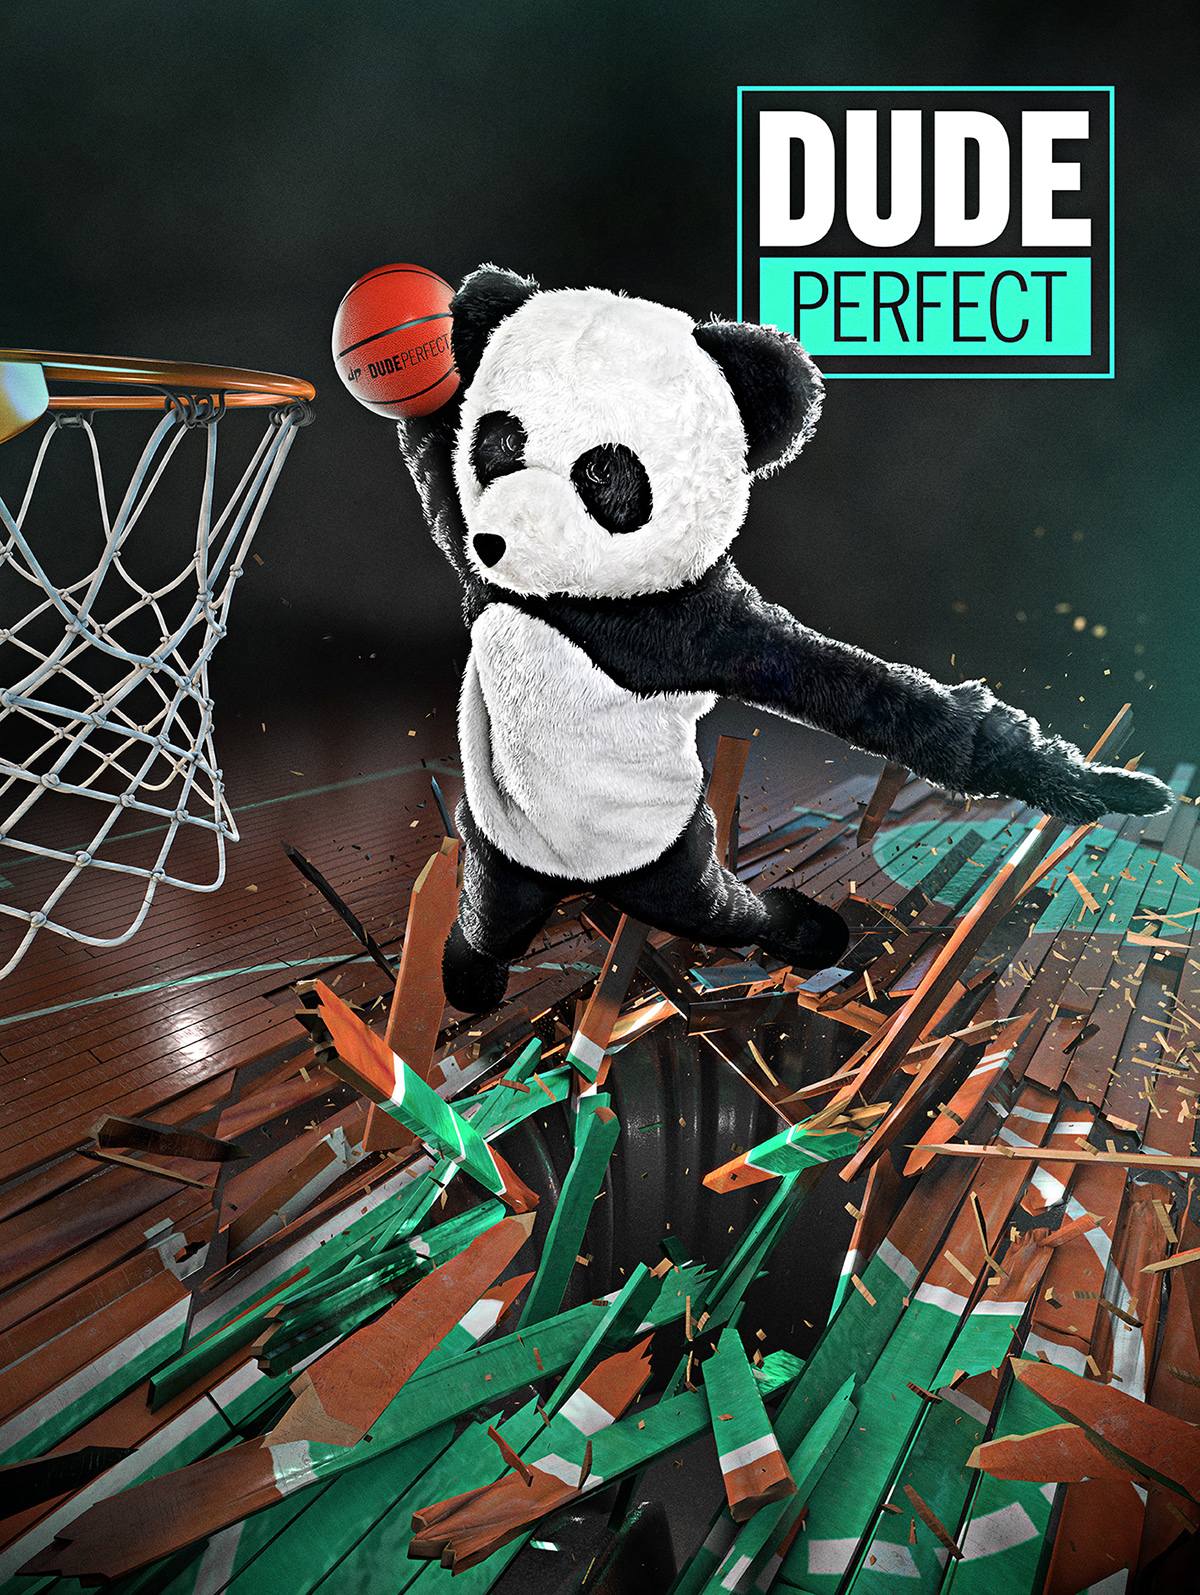 Dude perfect artwork on behance for Dude perfect coloring pages